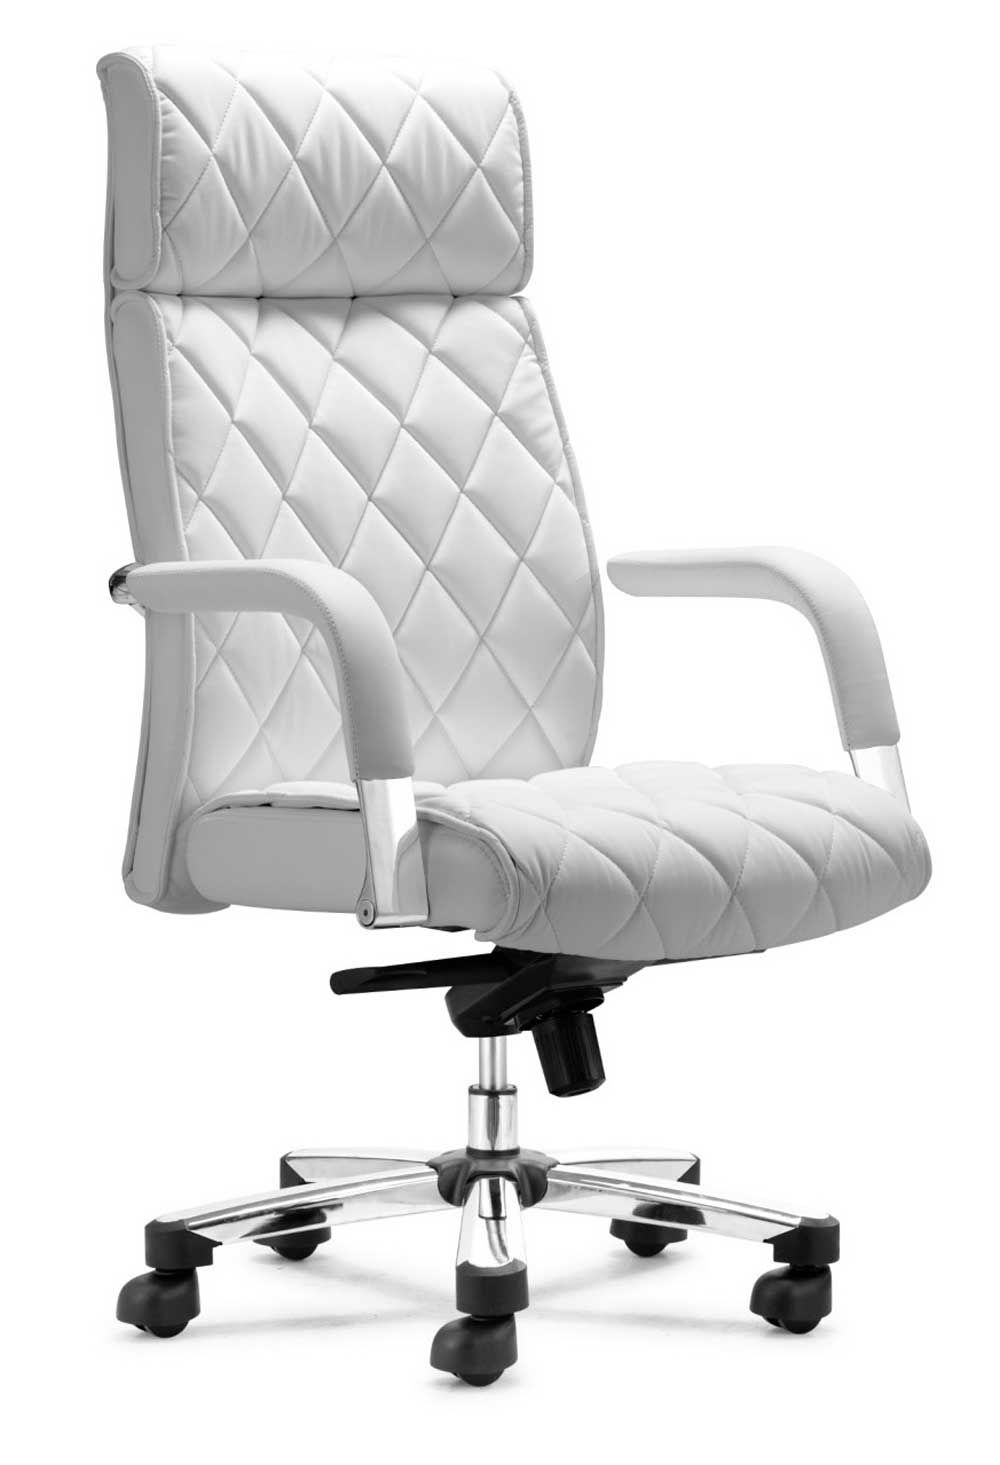 Modern White Desk Chair Floor Mats For Salon Chairs Zuo Regal High Back Leather Office New